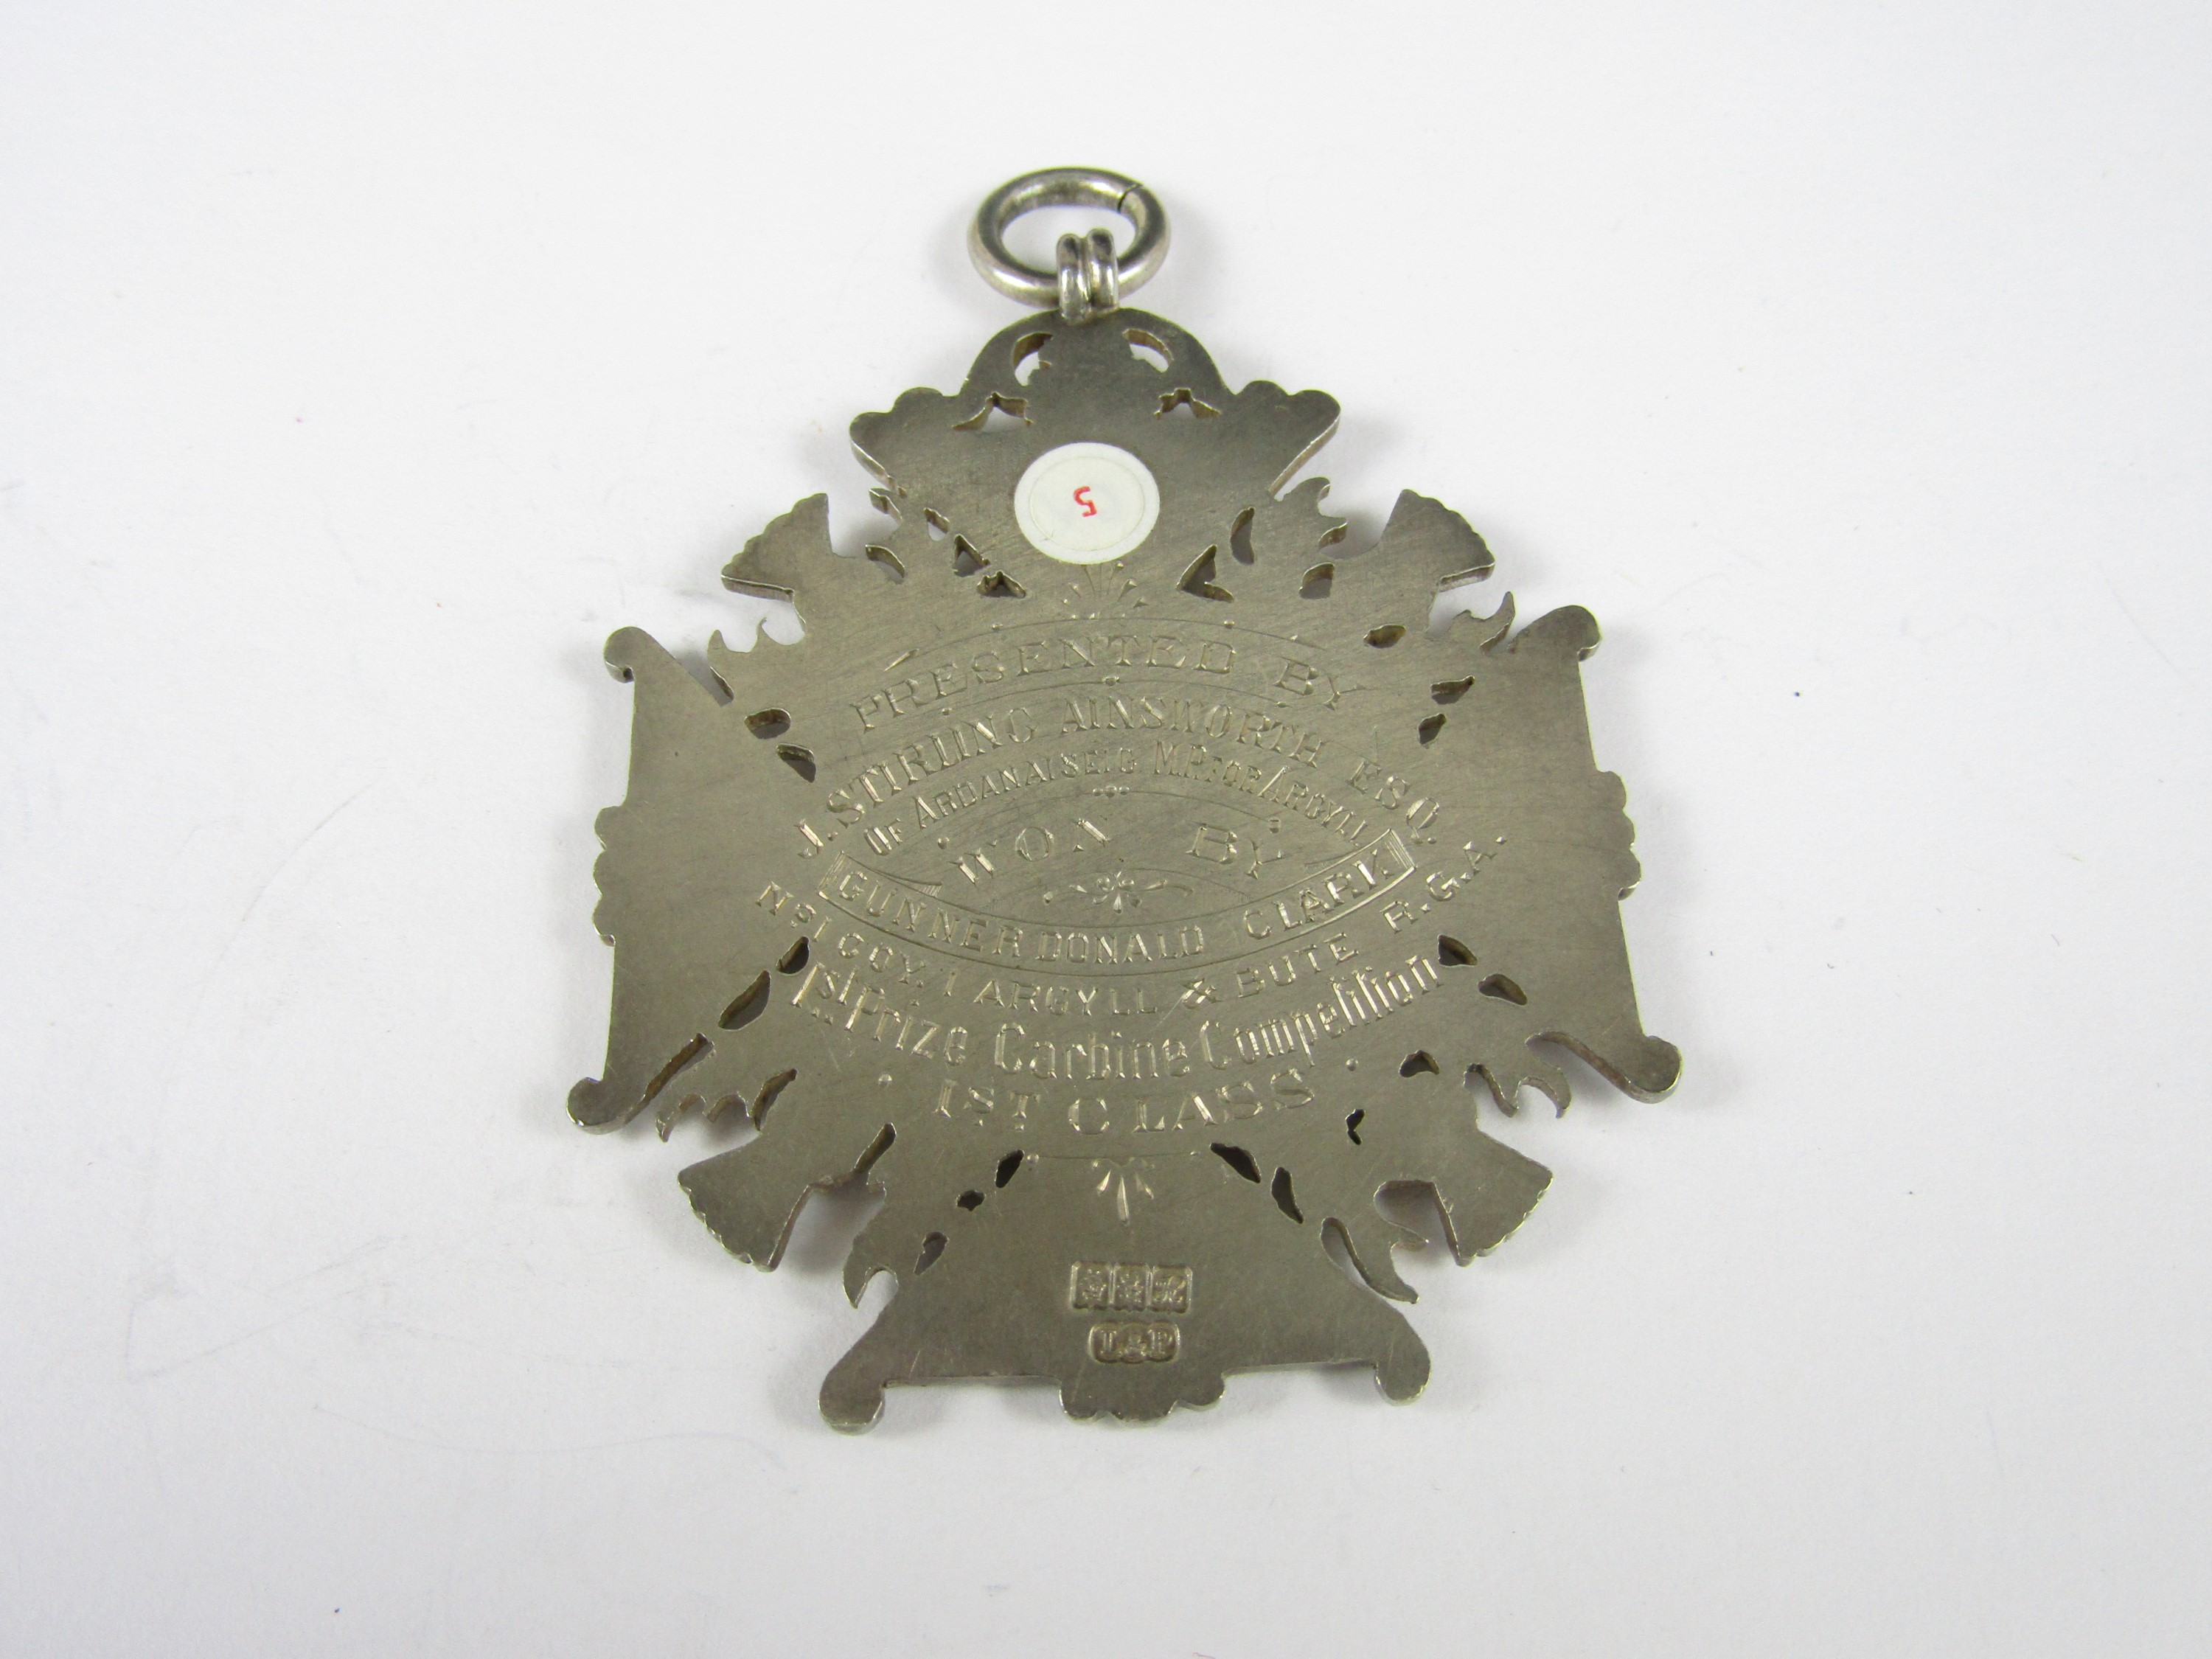 Lot 49 - A large Edwardian silver prize medallion, presented by J Stirling Ainsworth esq, of Ardanaiseig,